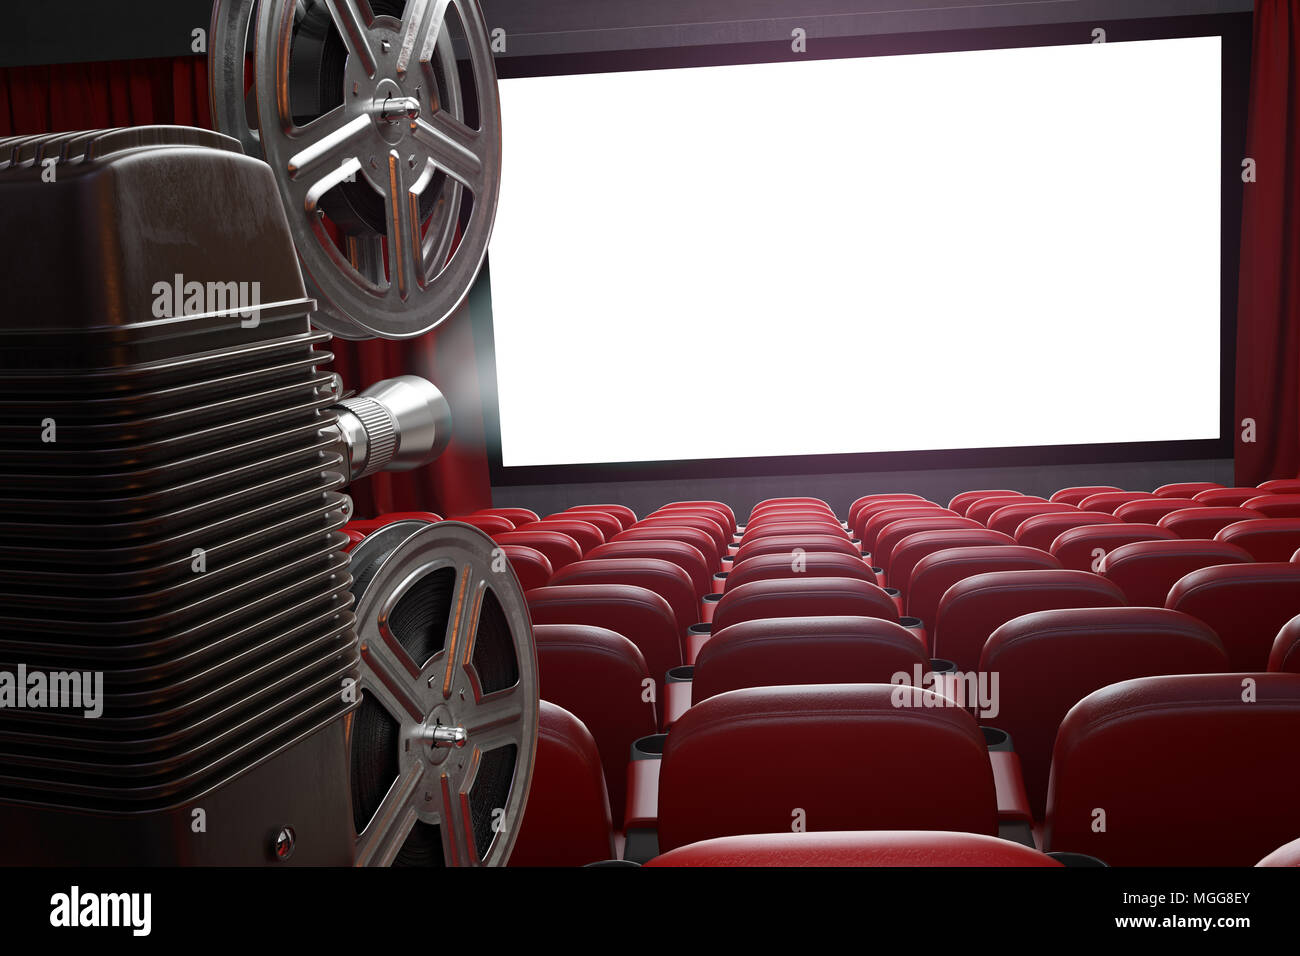 Movie Projector And Blank Cinema Screen With Empty Seats Cinema Movie Or Home Video Concept Background 3d Illustration Stock Photo Alamy